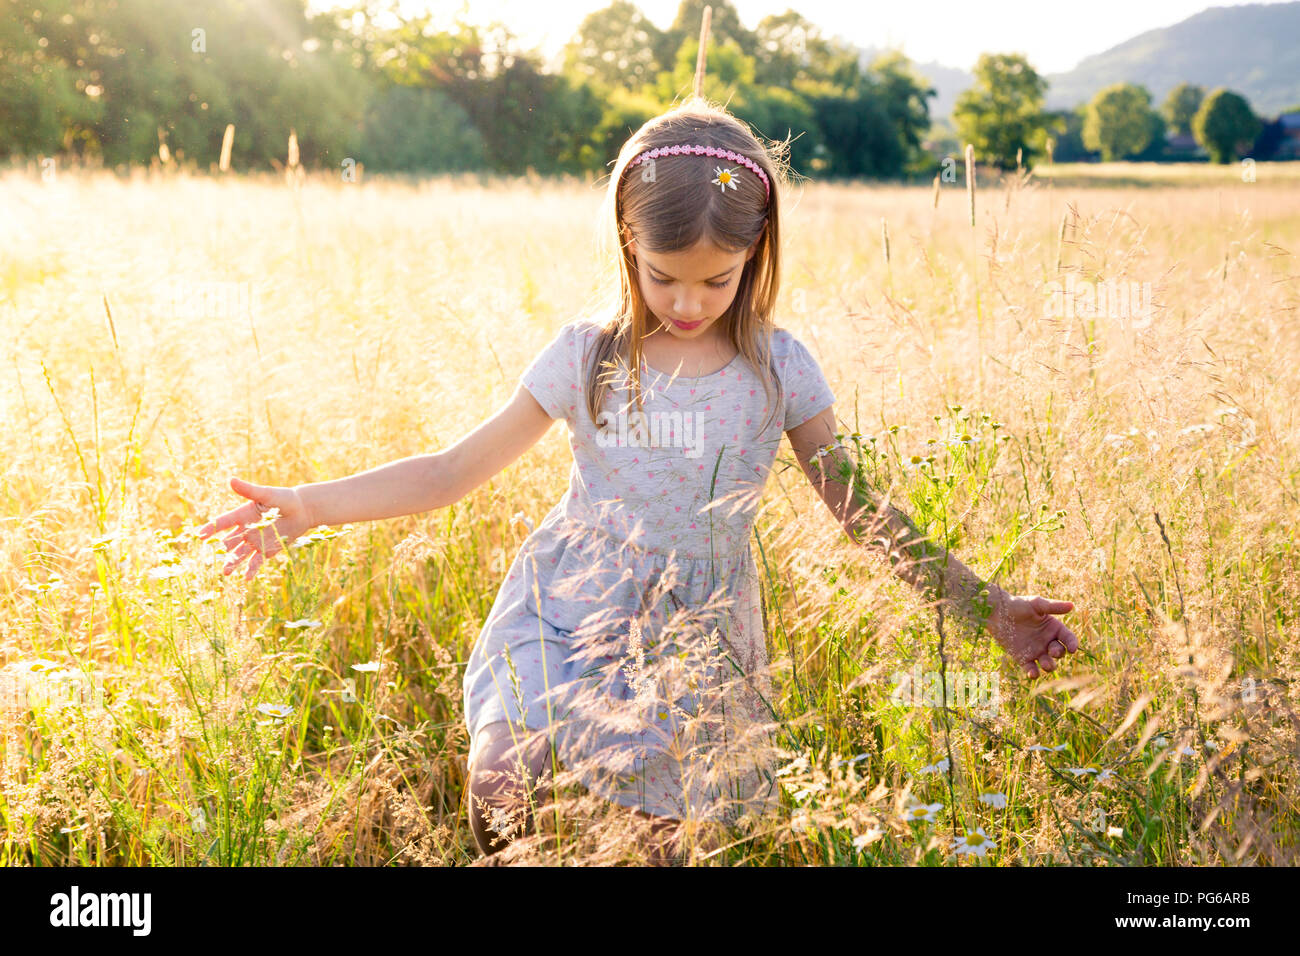 Young girl walking through field at summer evening - Stock Image